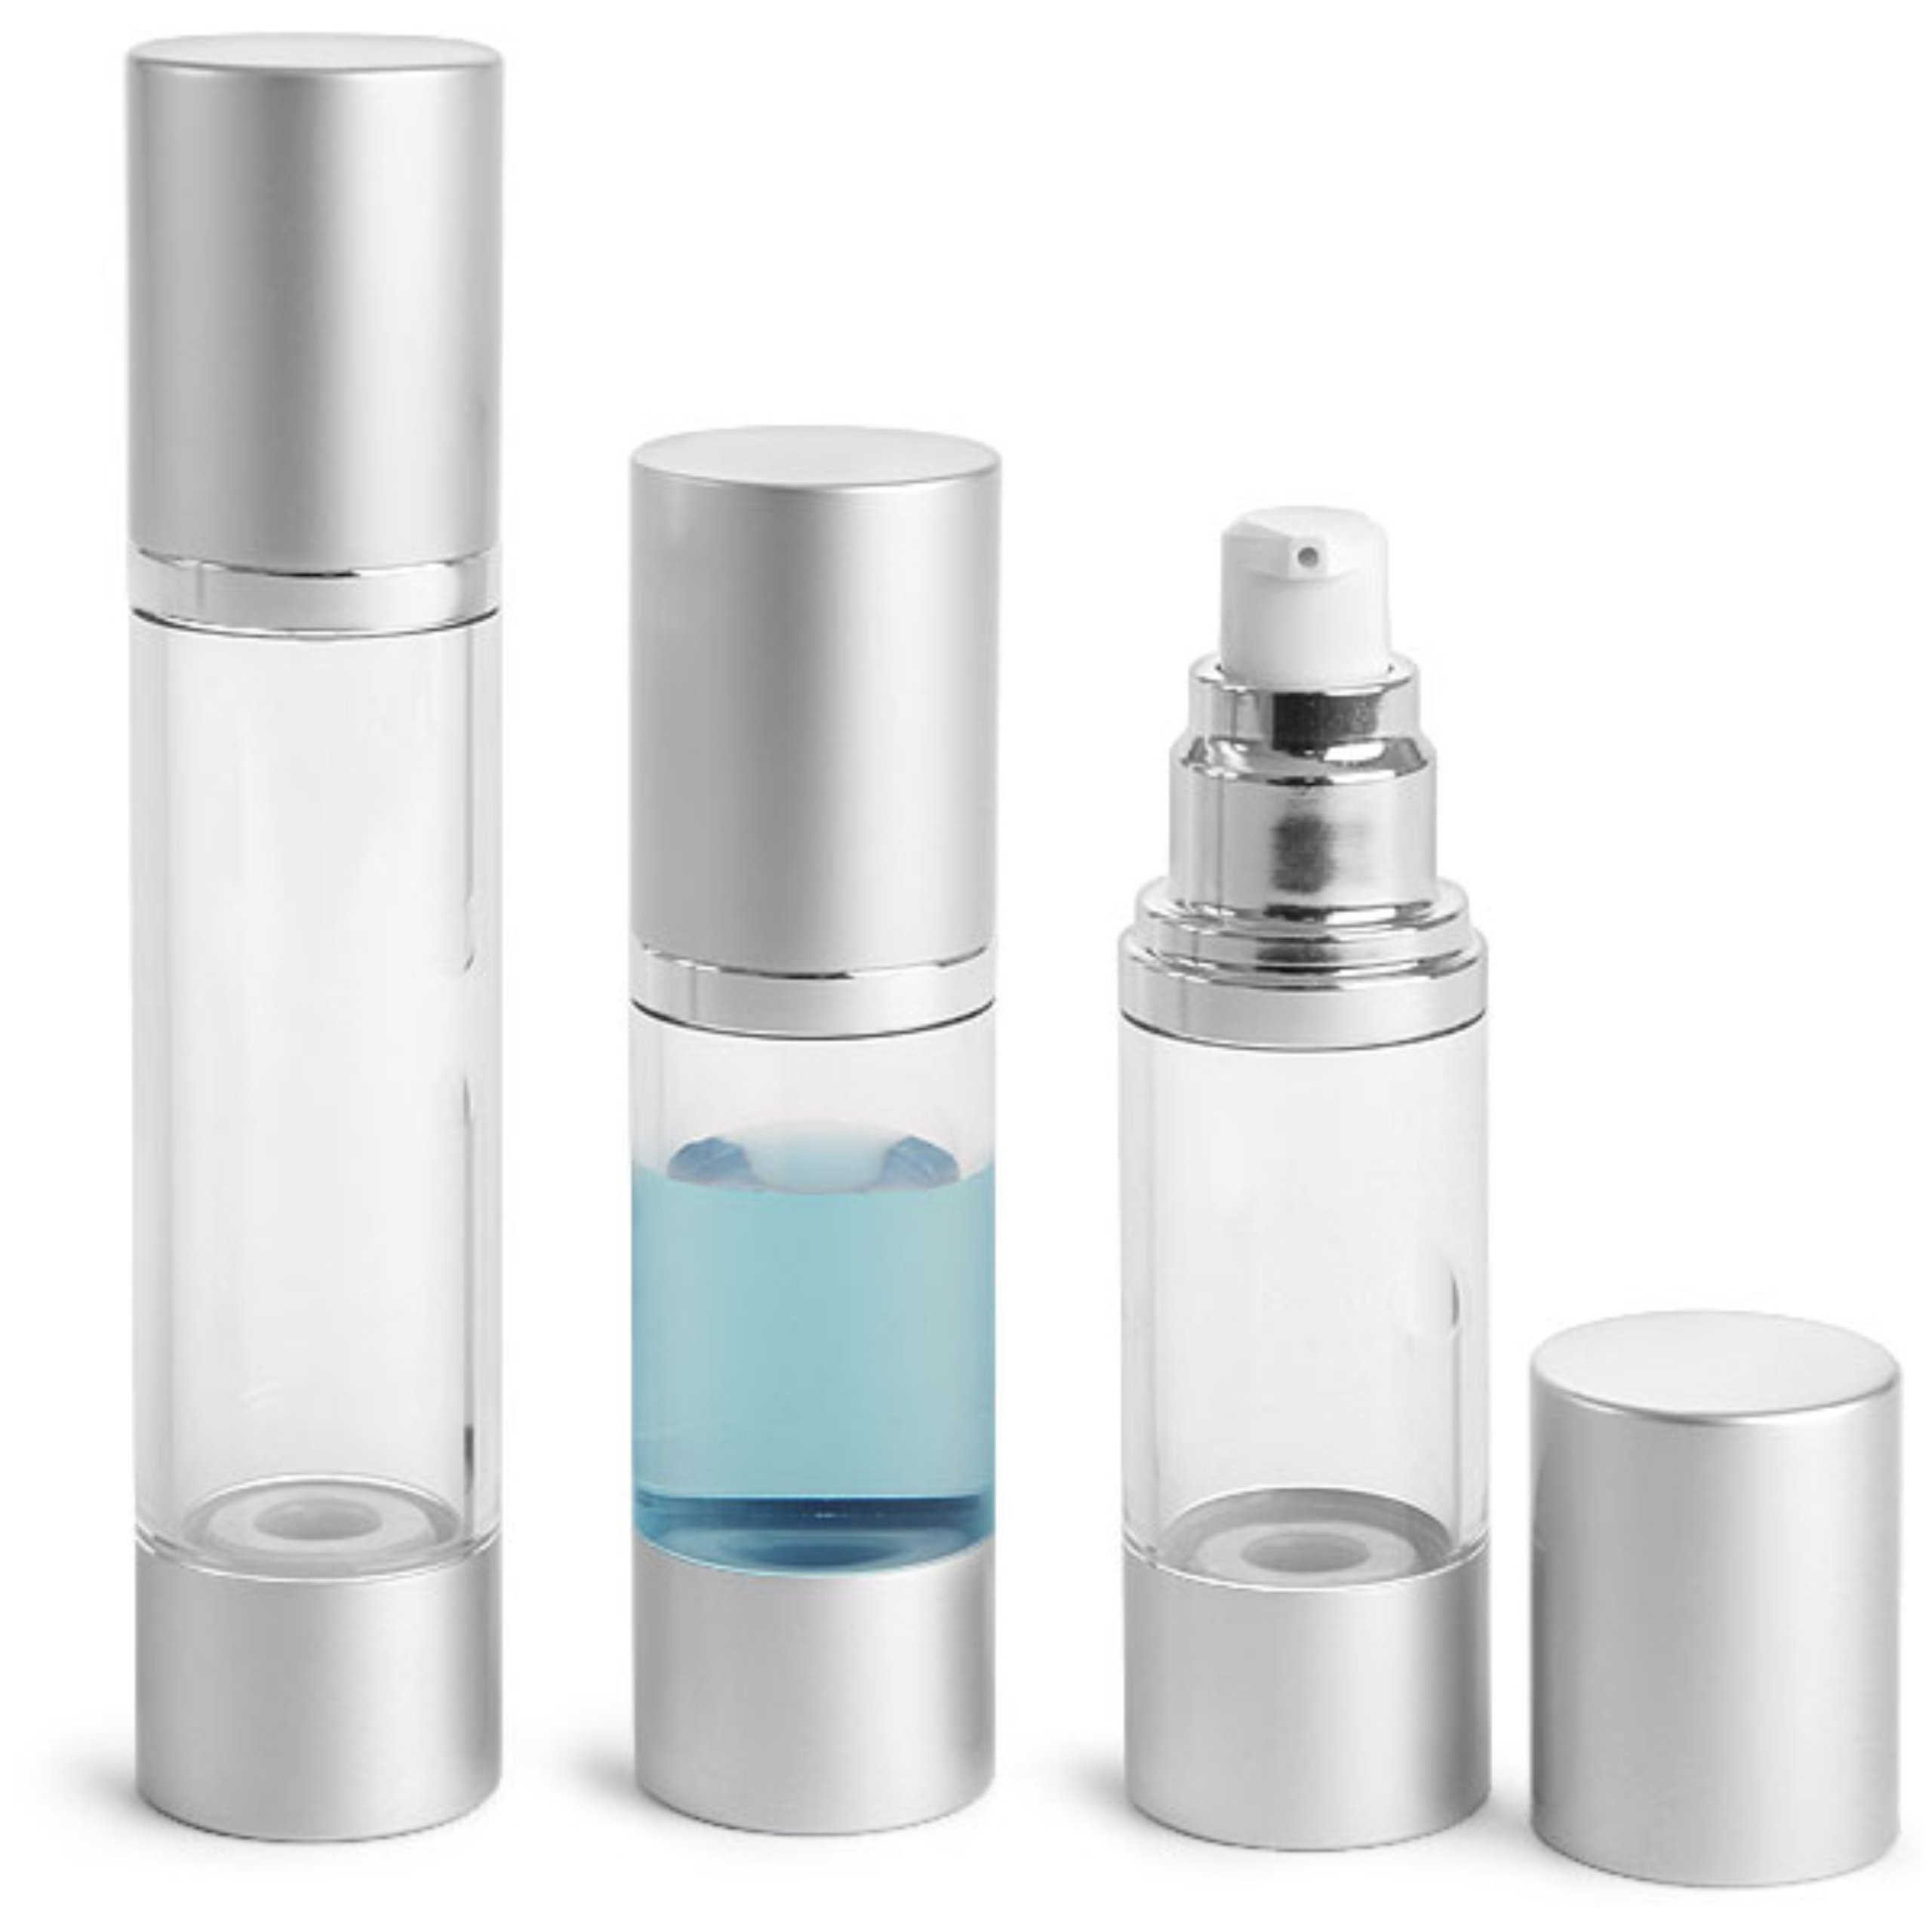 MagnaKoys Clear AS Airless Pump Bottles w/Silver Pumps & Caps Her's & His 1 oz / 1.5oz lotions and gels Dispenser (2 Pack) (1 oz & 1.5 oz Airless Pump)